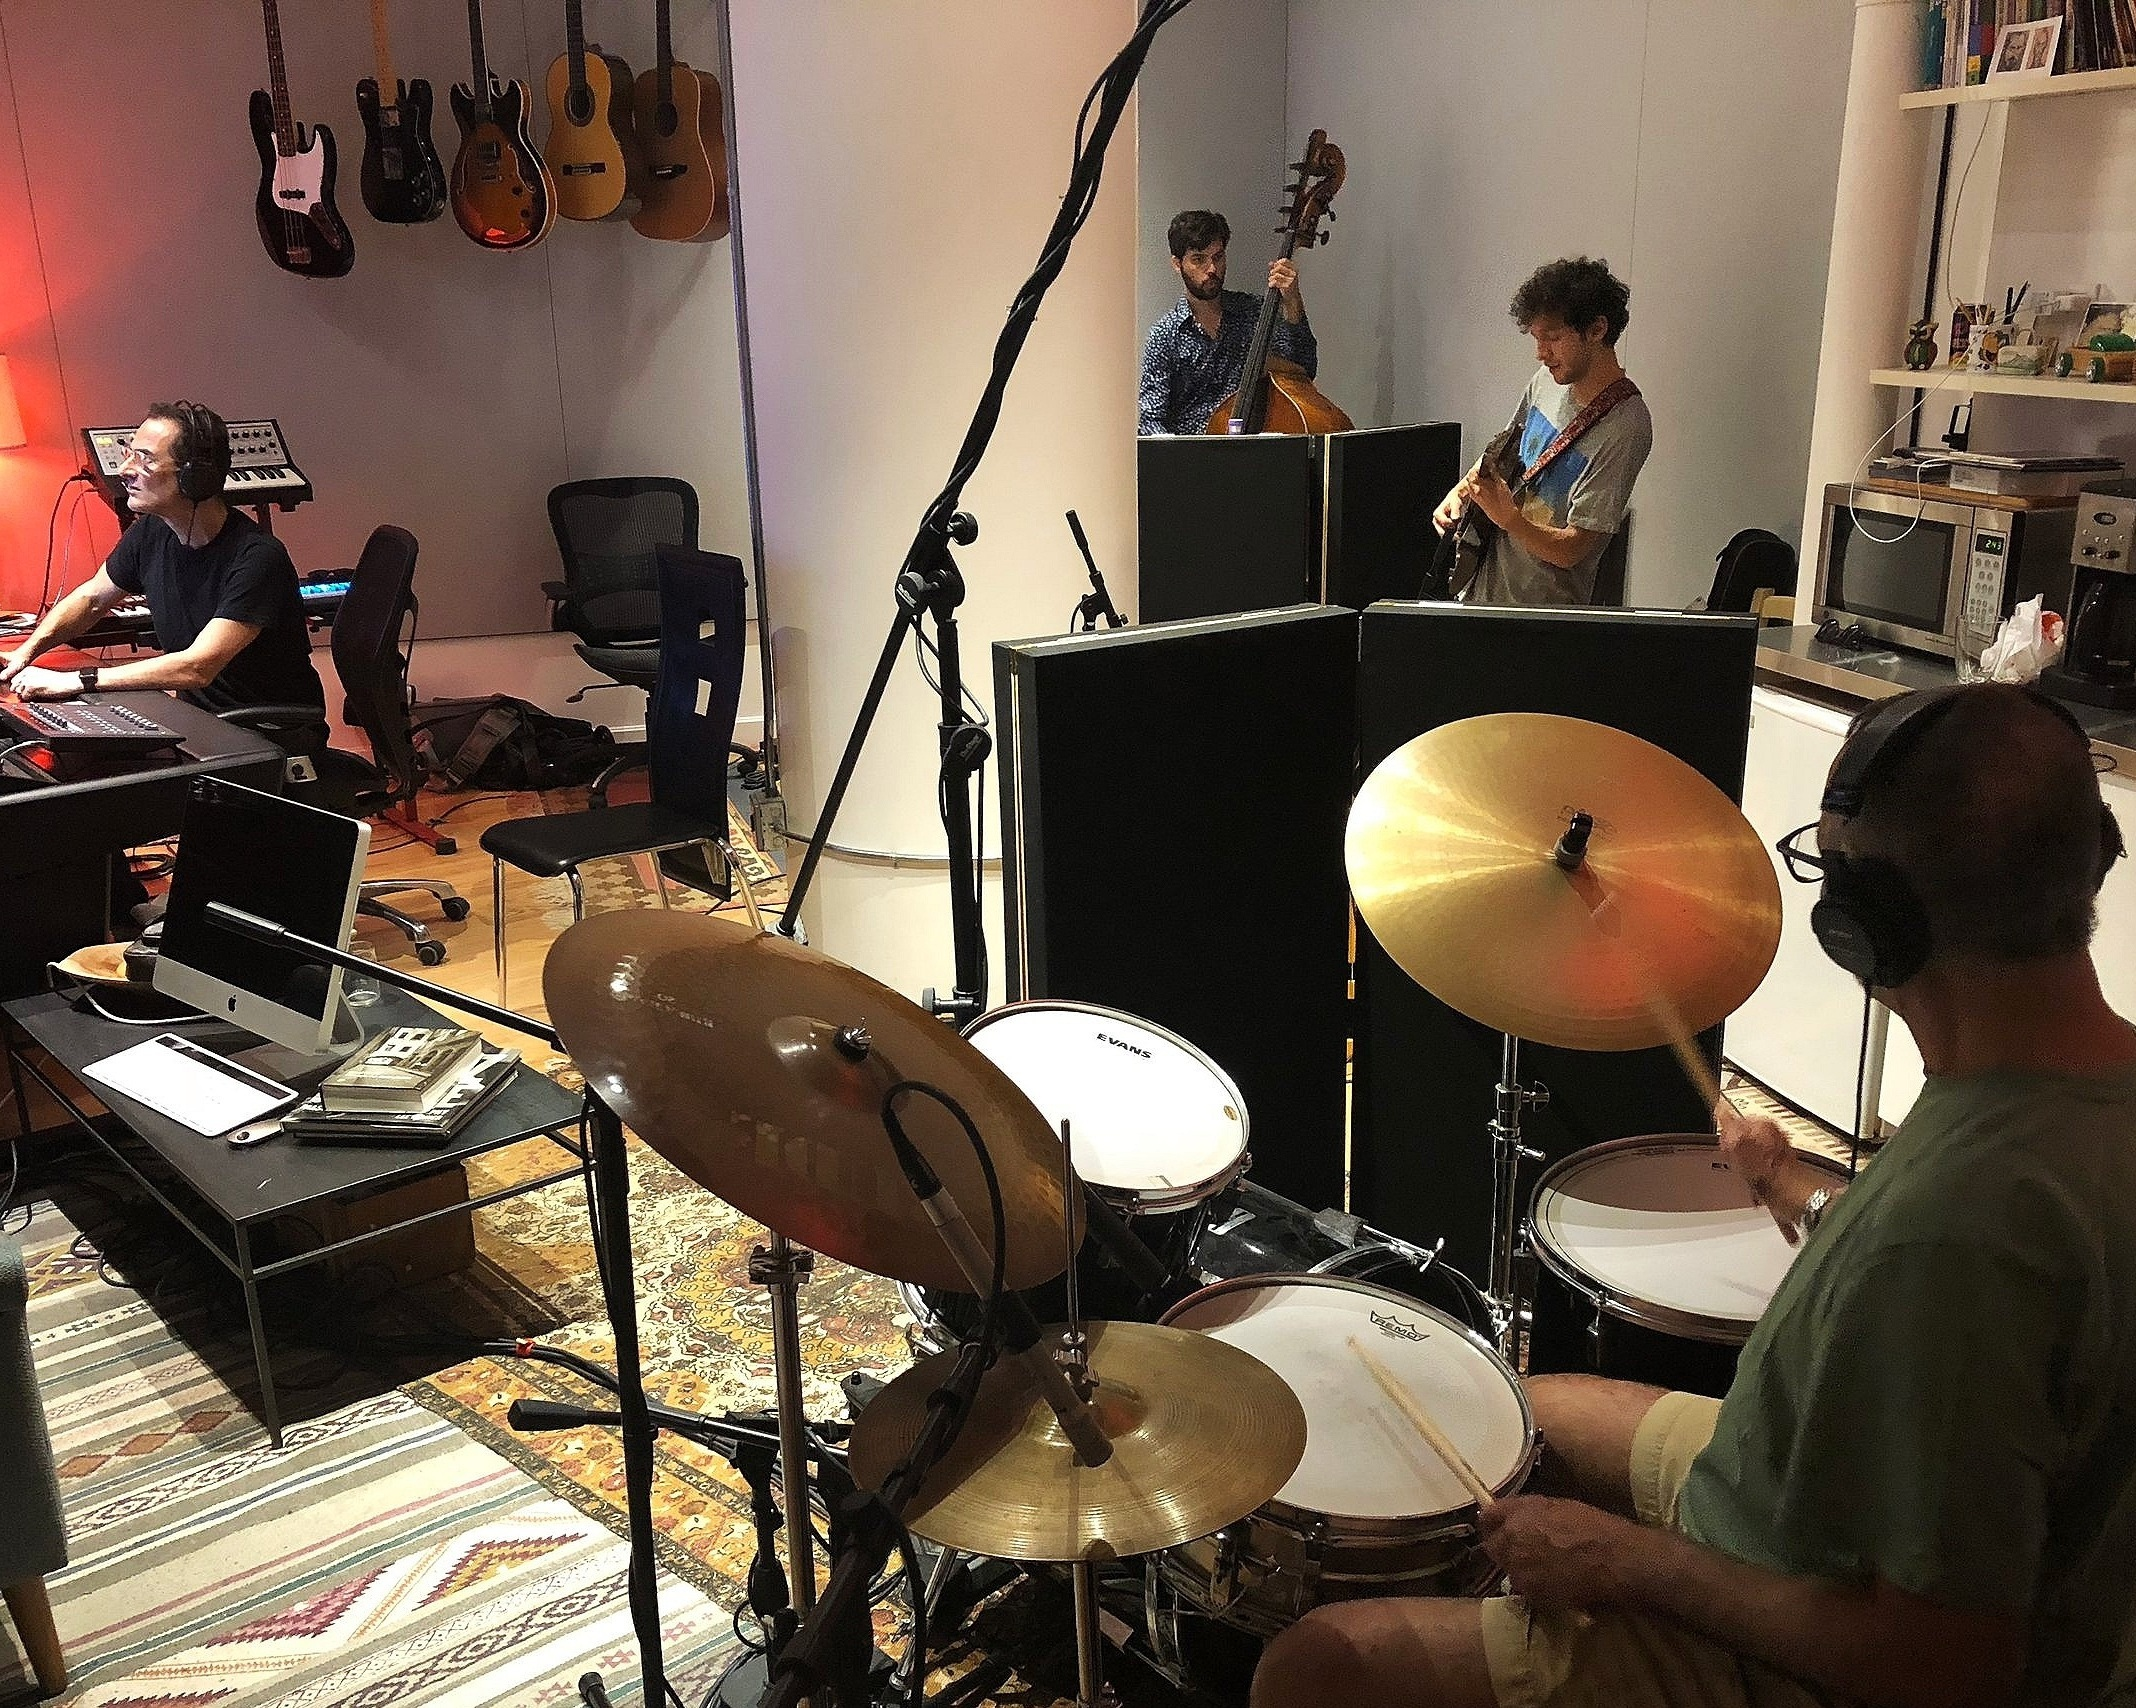 L-R: Zé Luis (on the console), Eduardo Belo: upright bass, Pedro Martins: electric guitar and Helio Schiavo: drums at The Atelier Music Studio.